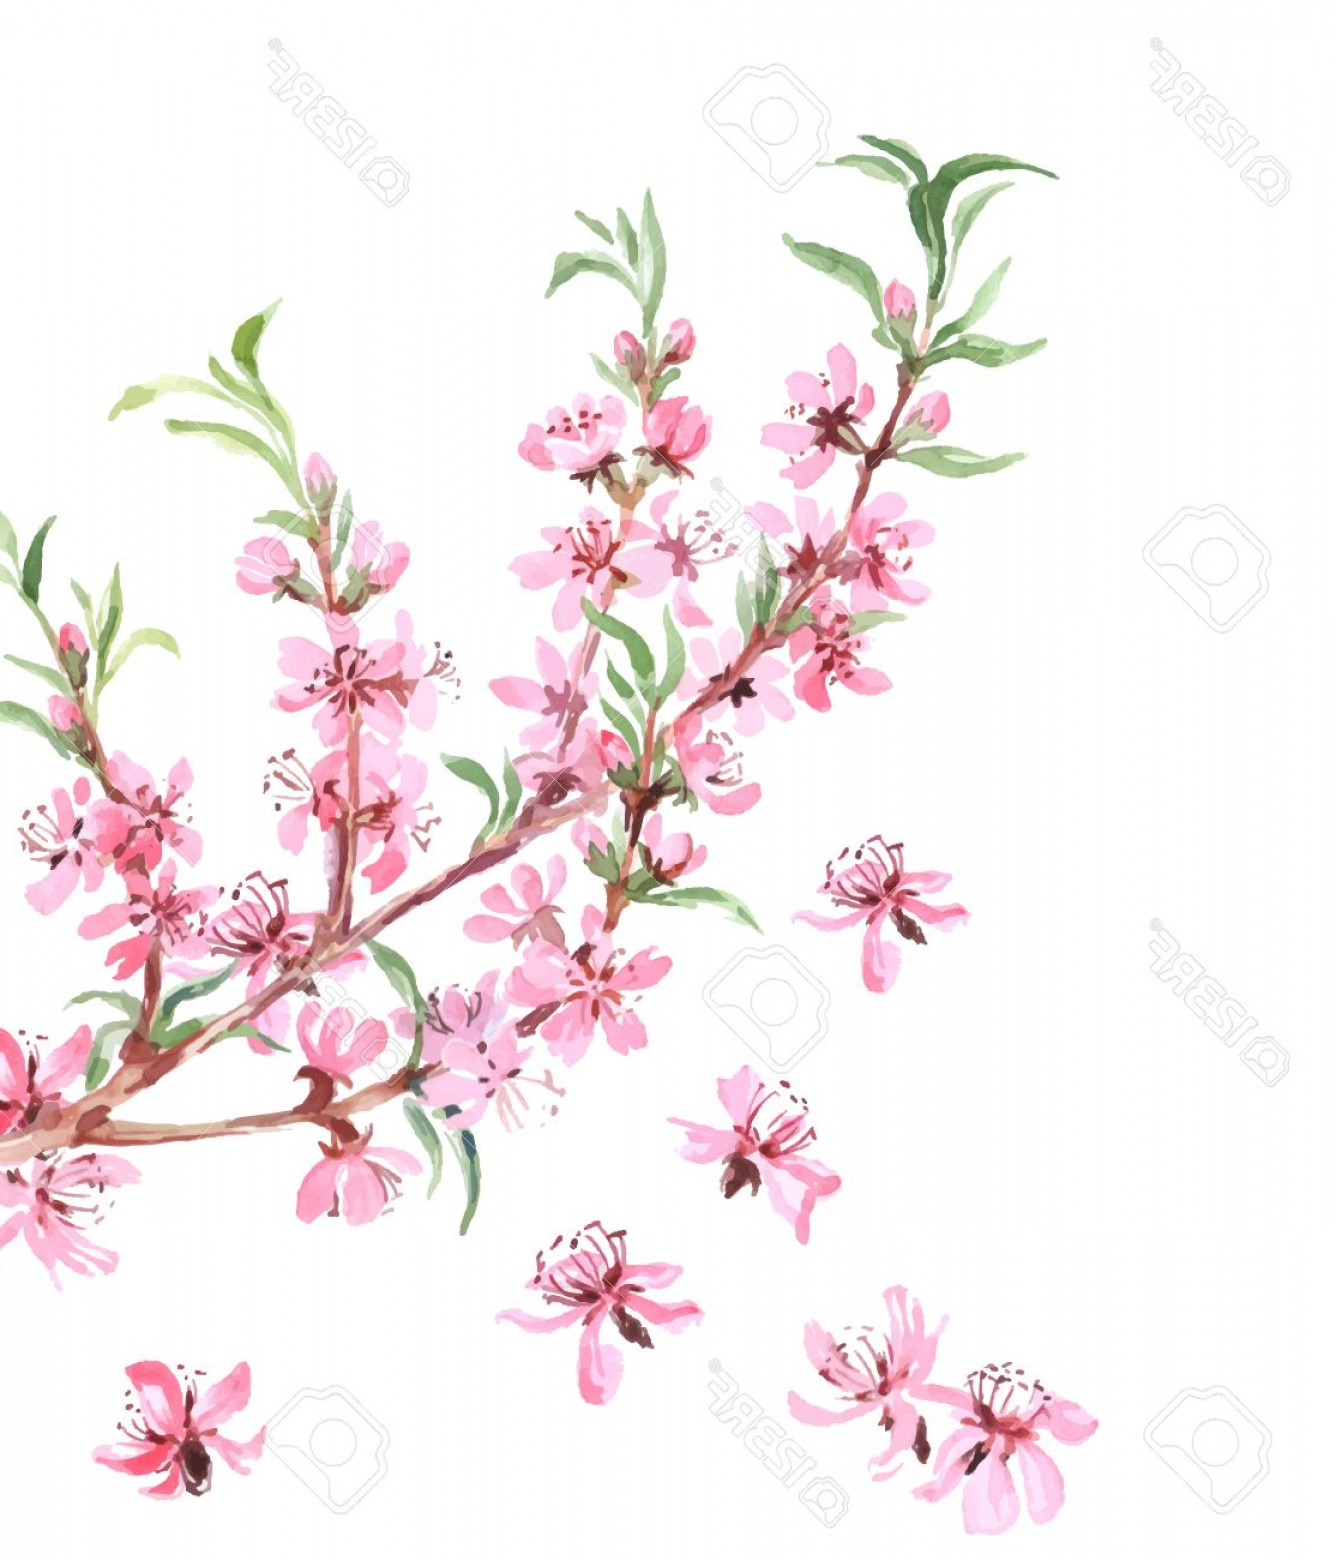 Almond Tree Vector: Photostock Vector Almonds Tree Pink Flowers Close Up With Branch Isolated On White Background Vector Illustration